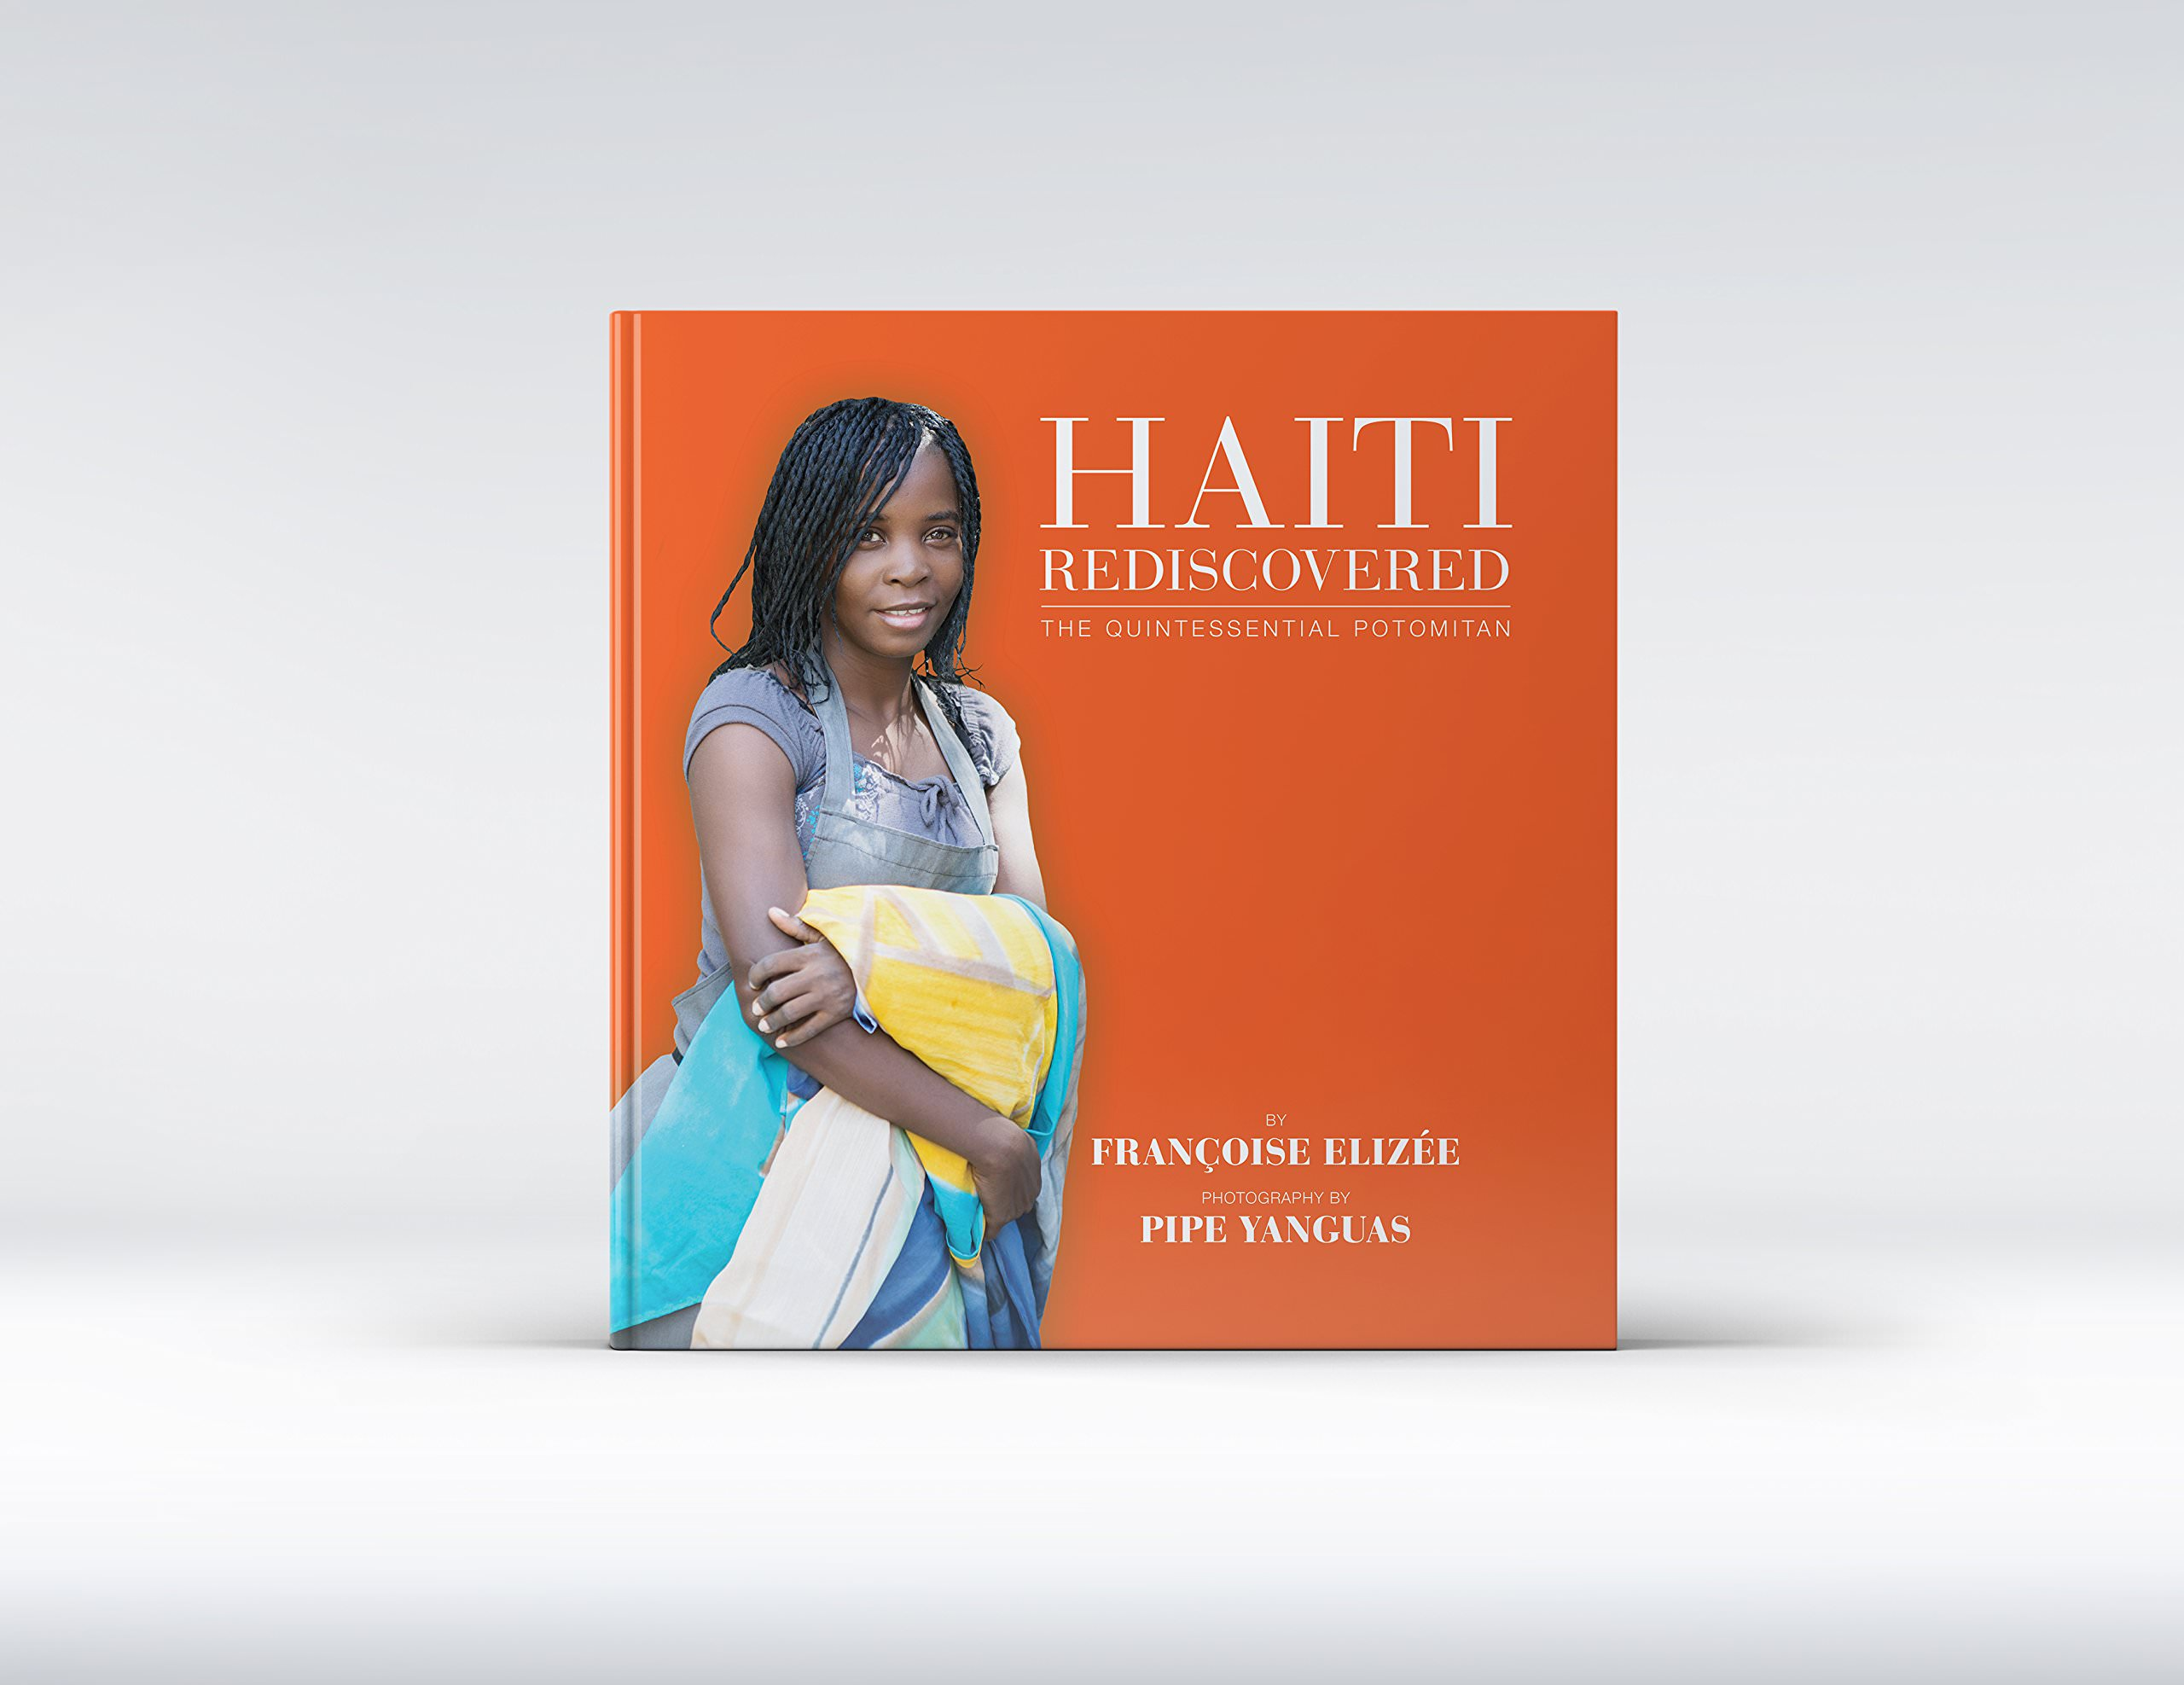 Haiti Rediscovered: The Quintessential Potomitan by Rançoise Elizee and photographer Pipe Yanguas. Courtesy the authors.